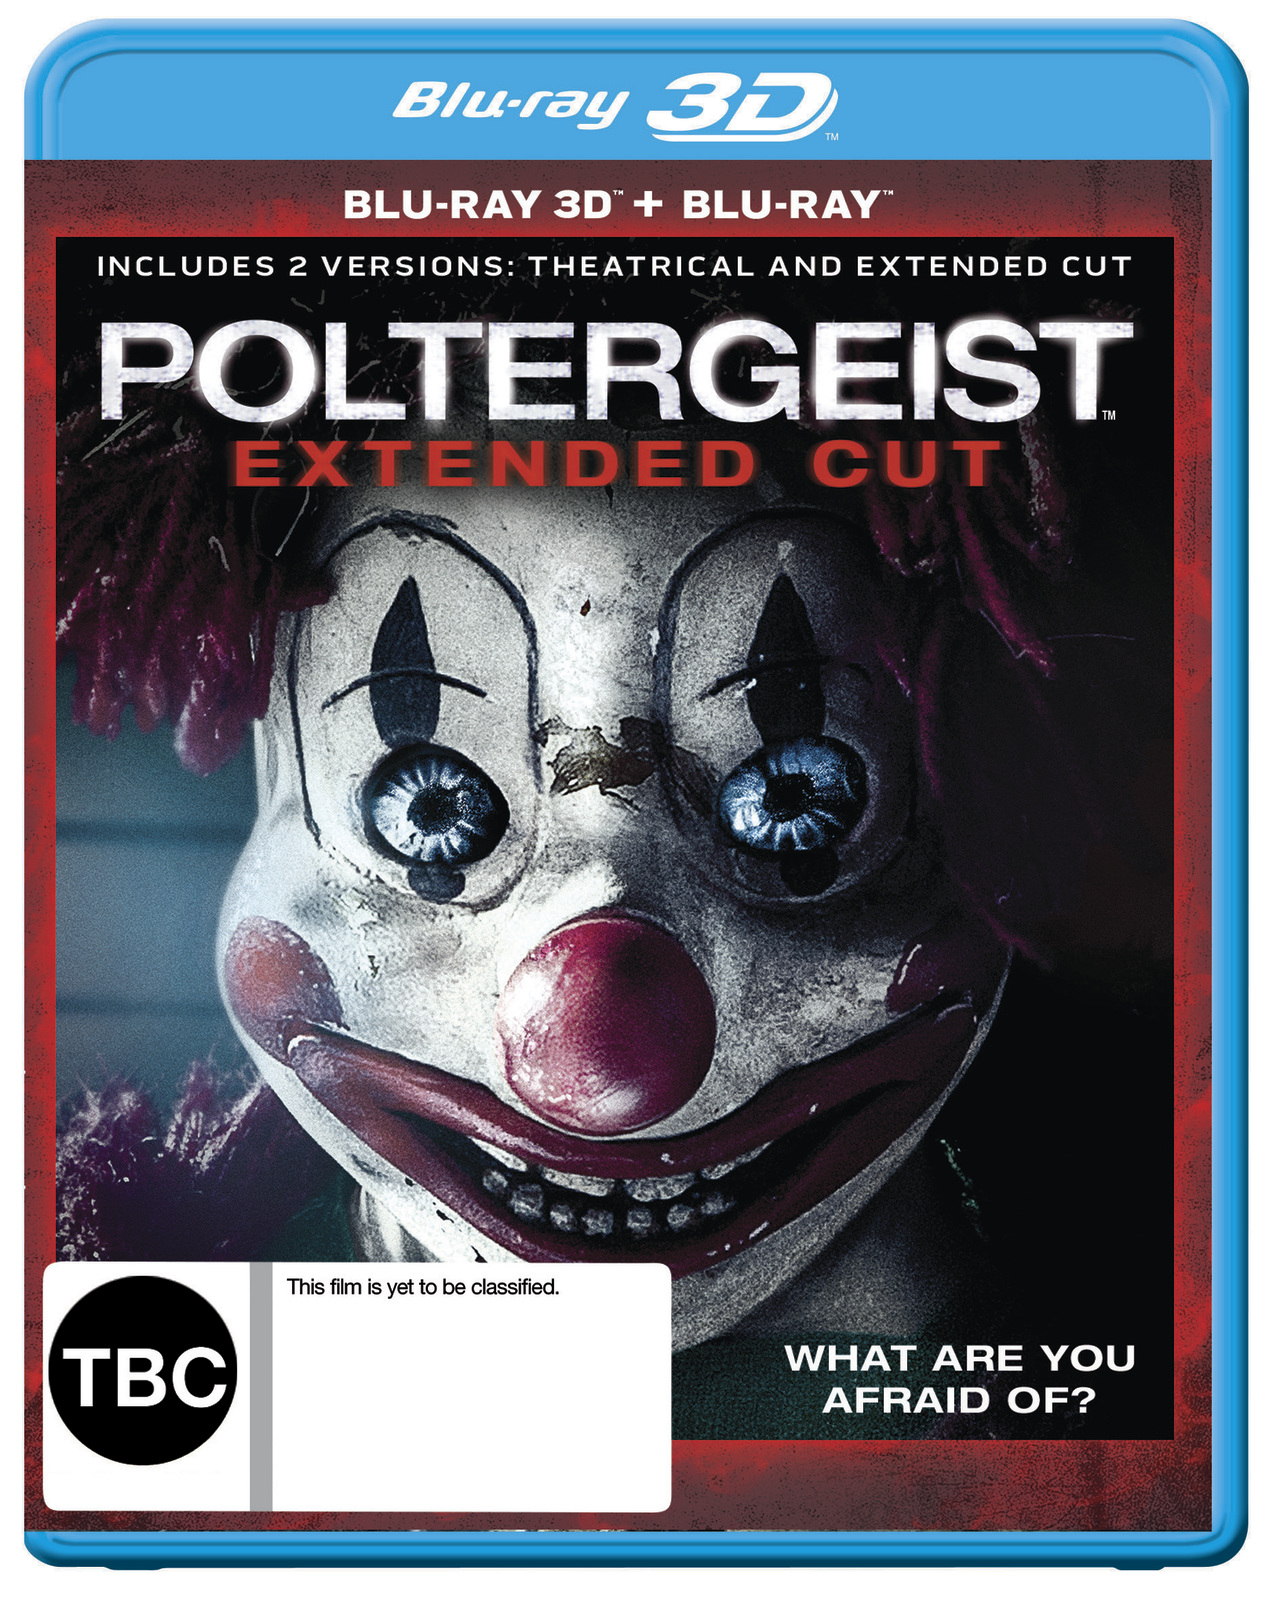 Poltergeist - Extended Cut on Blu-ray, 3D Blu-ray image